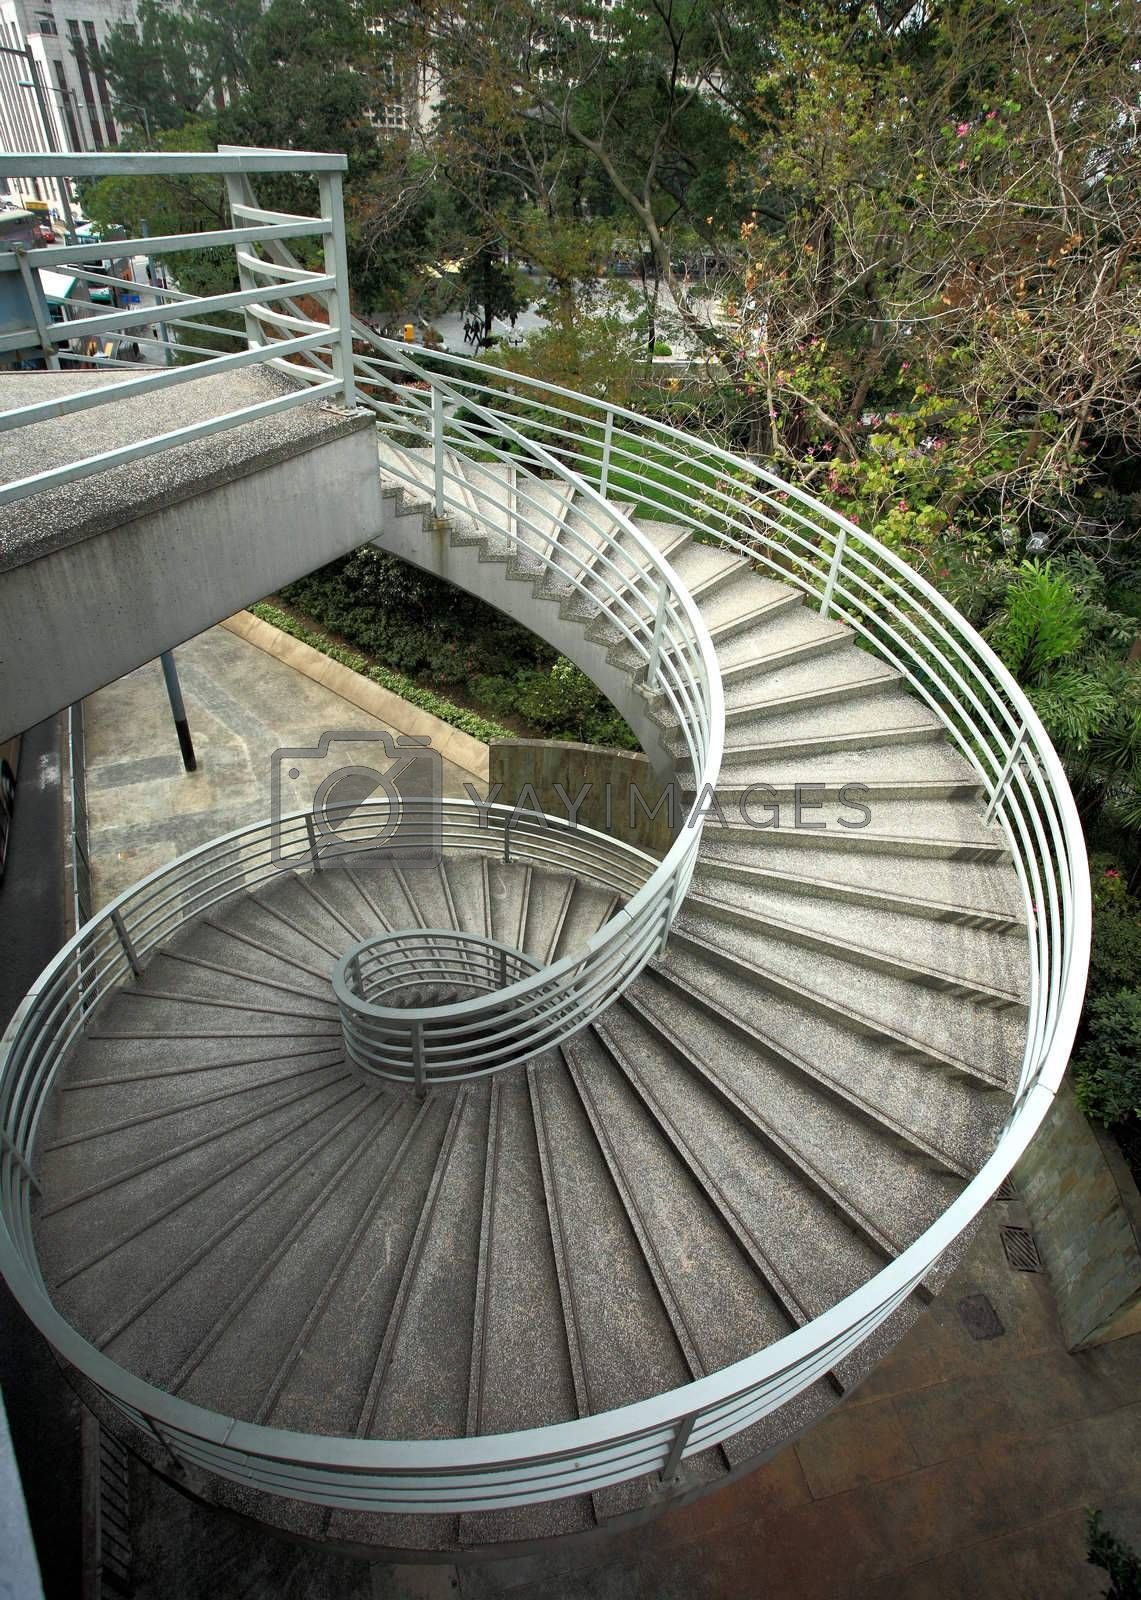 Royalty free image of It is the beautiful spiraling stairs  by leungchopan